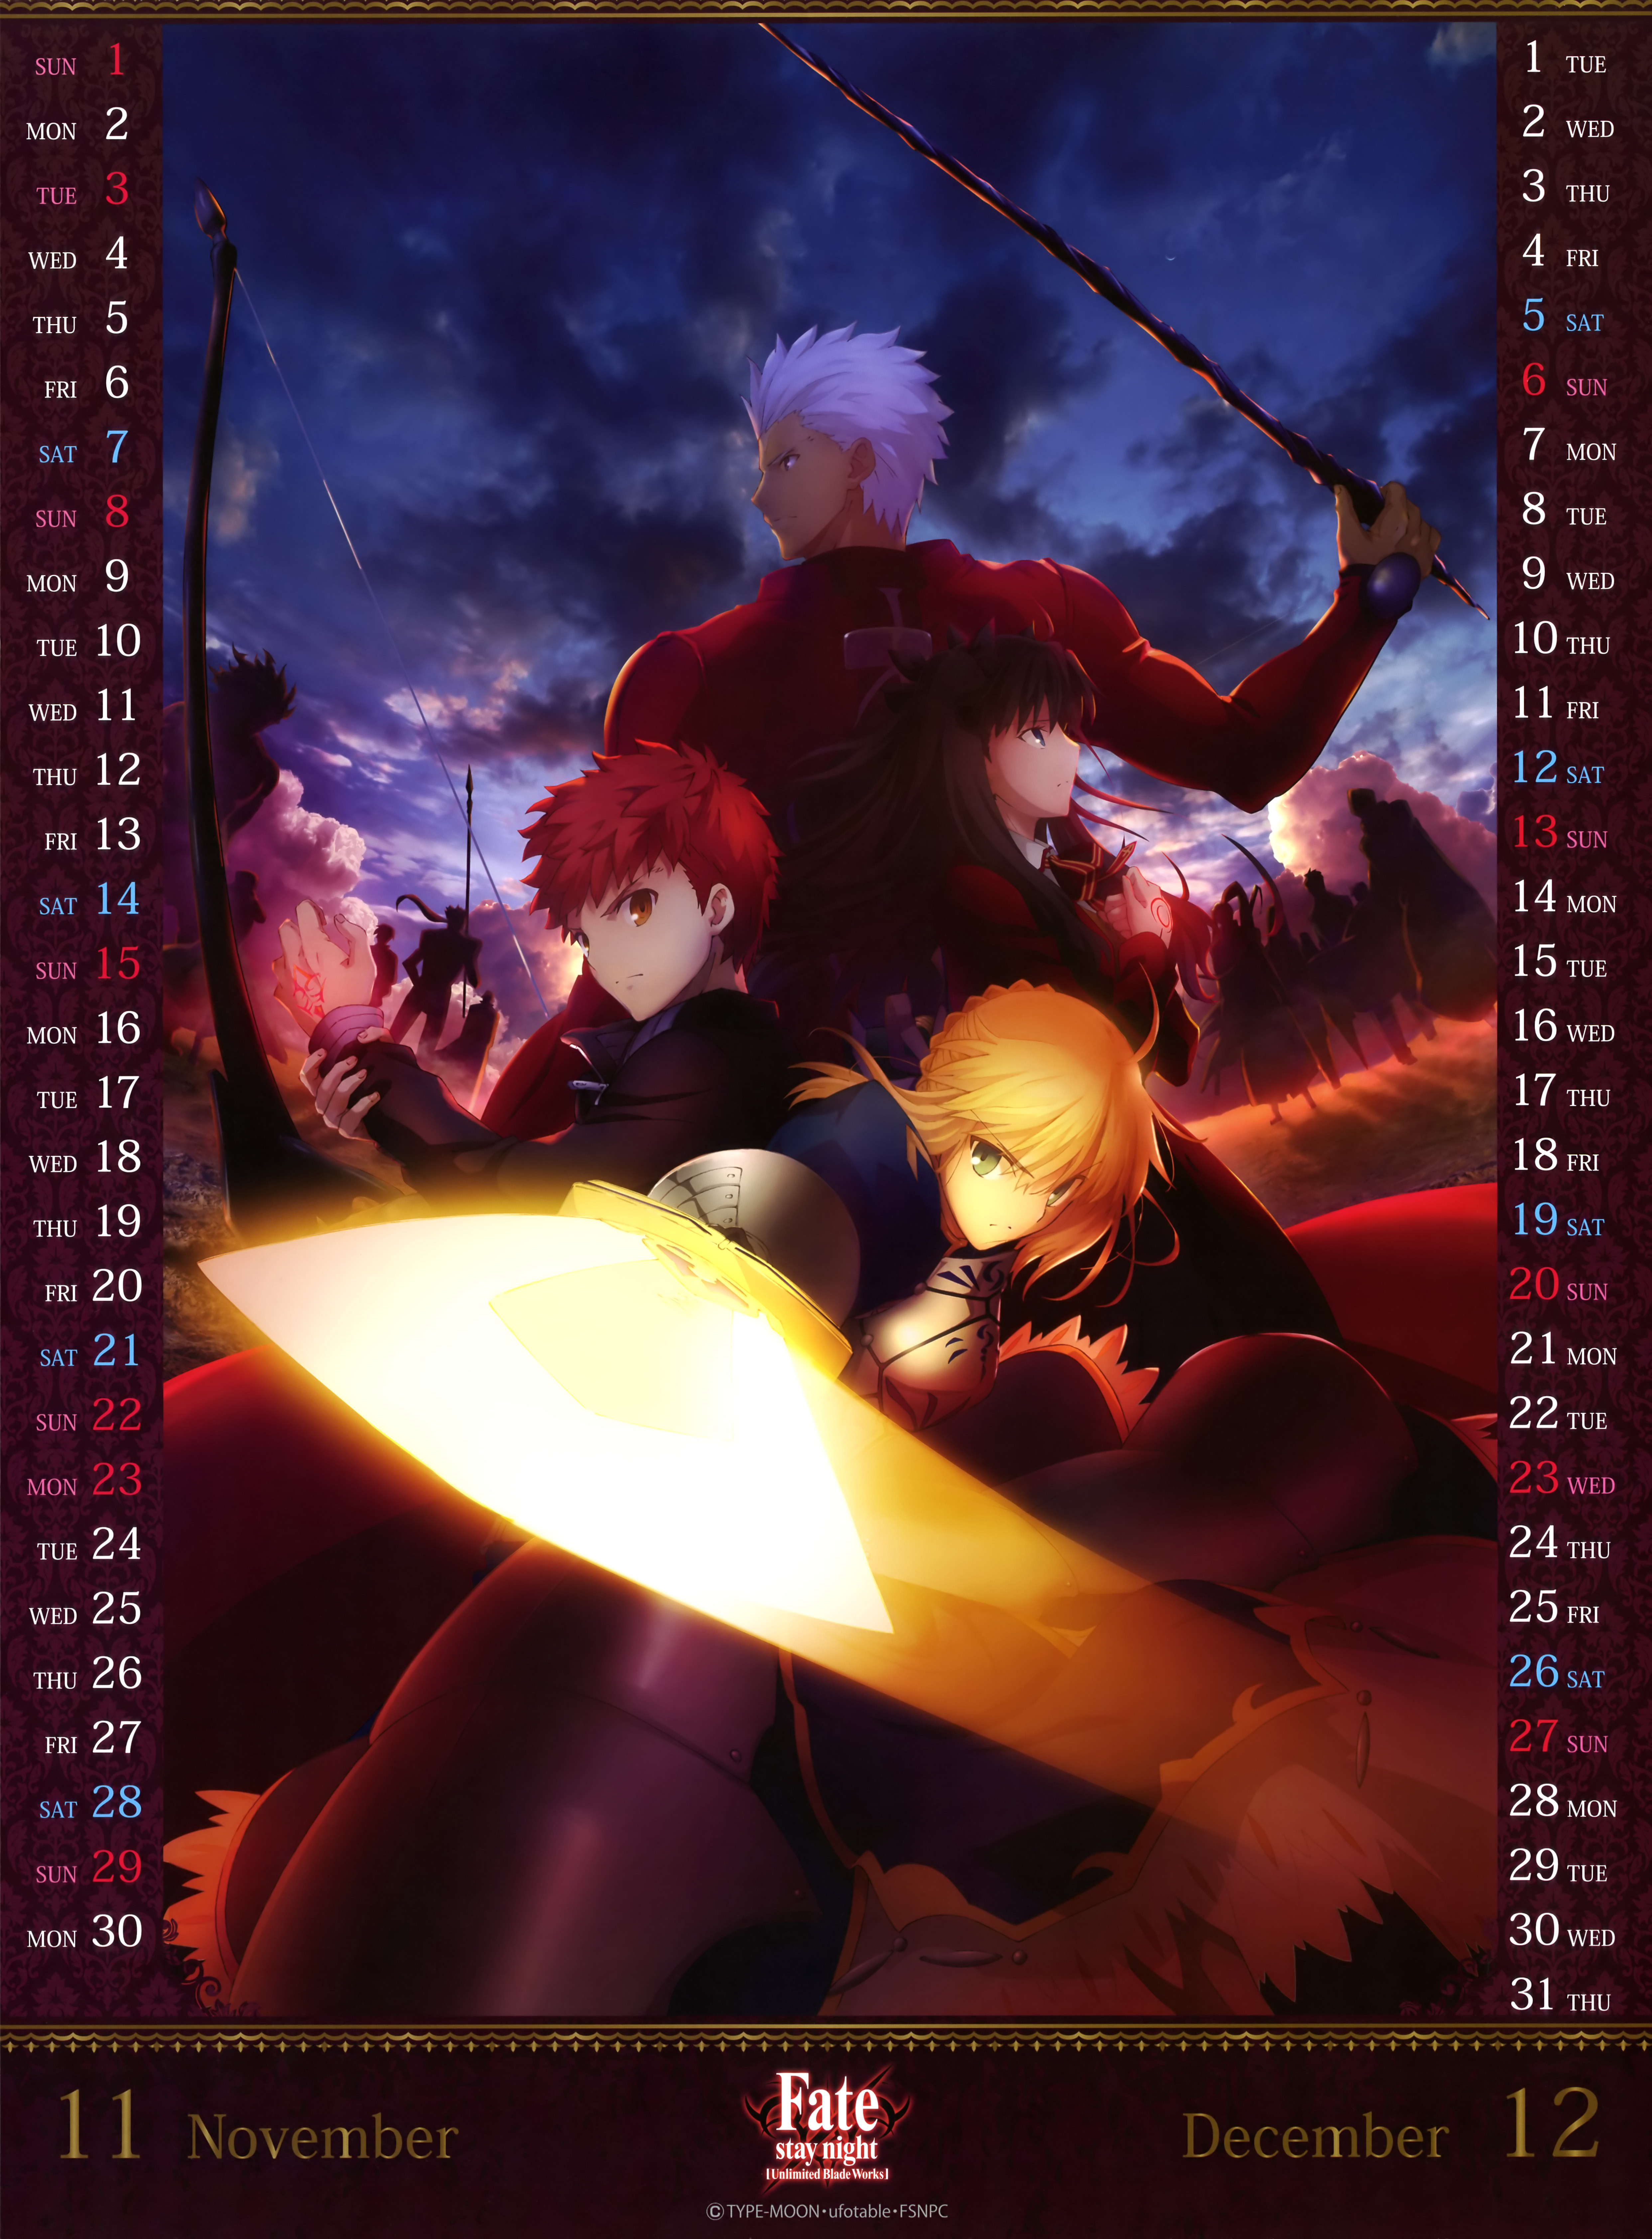 Fate-stay-night--Unlimited-Blade-Works-2015-Anime-Calendar-Image-6